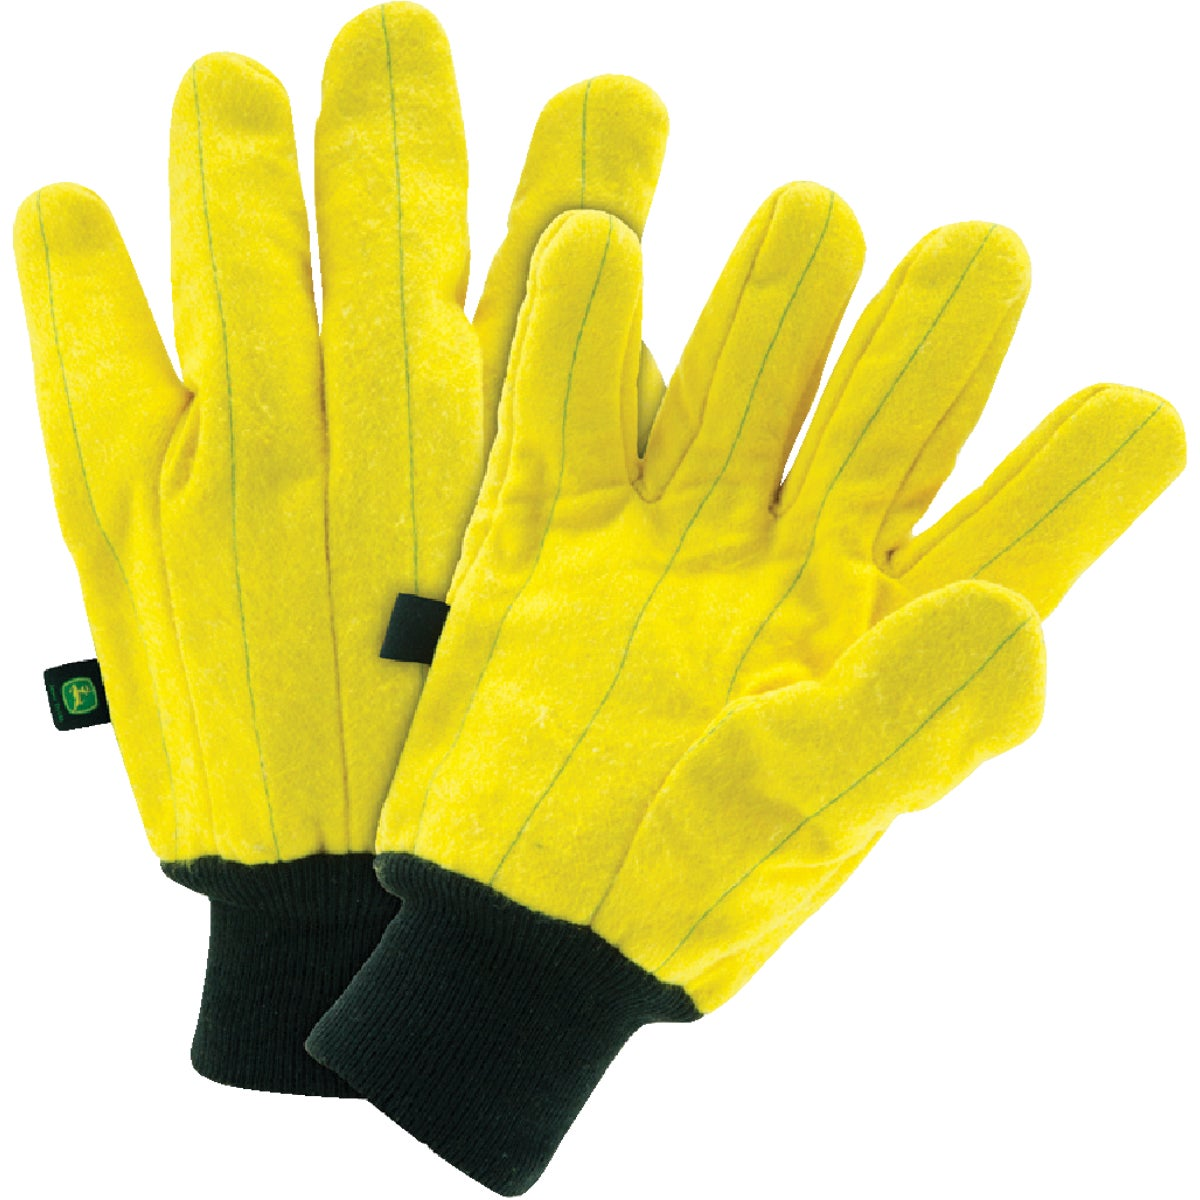 HEAVY DUTY CHORE GLOVE